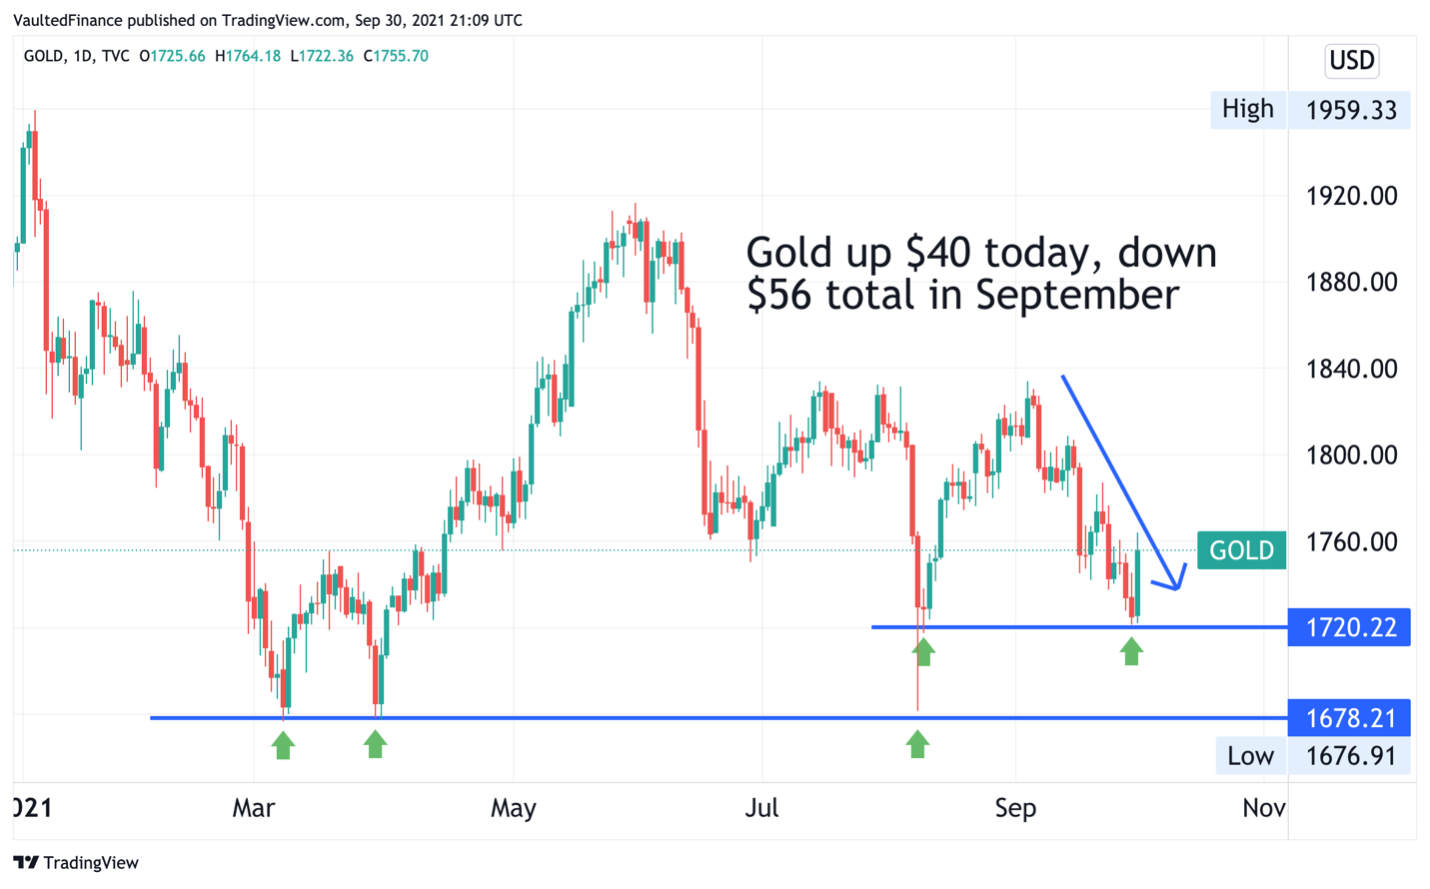 Gold up $40 today